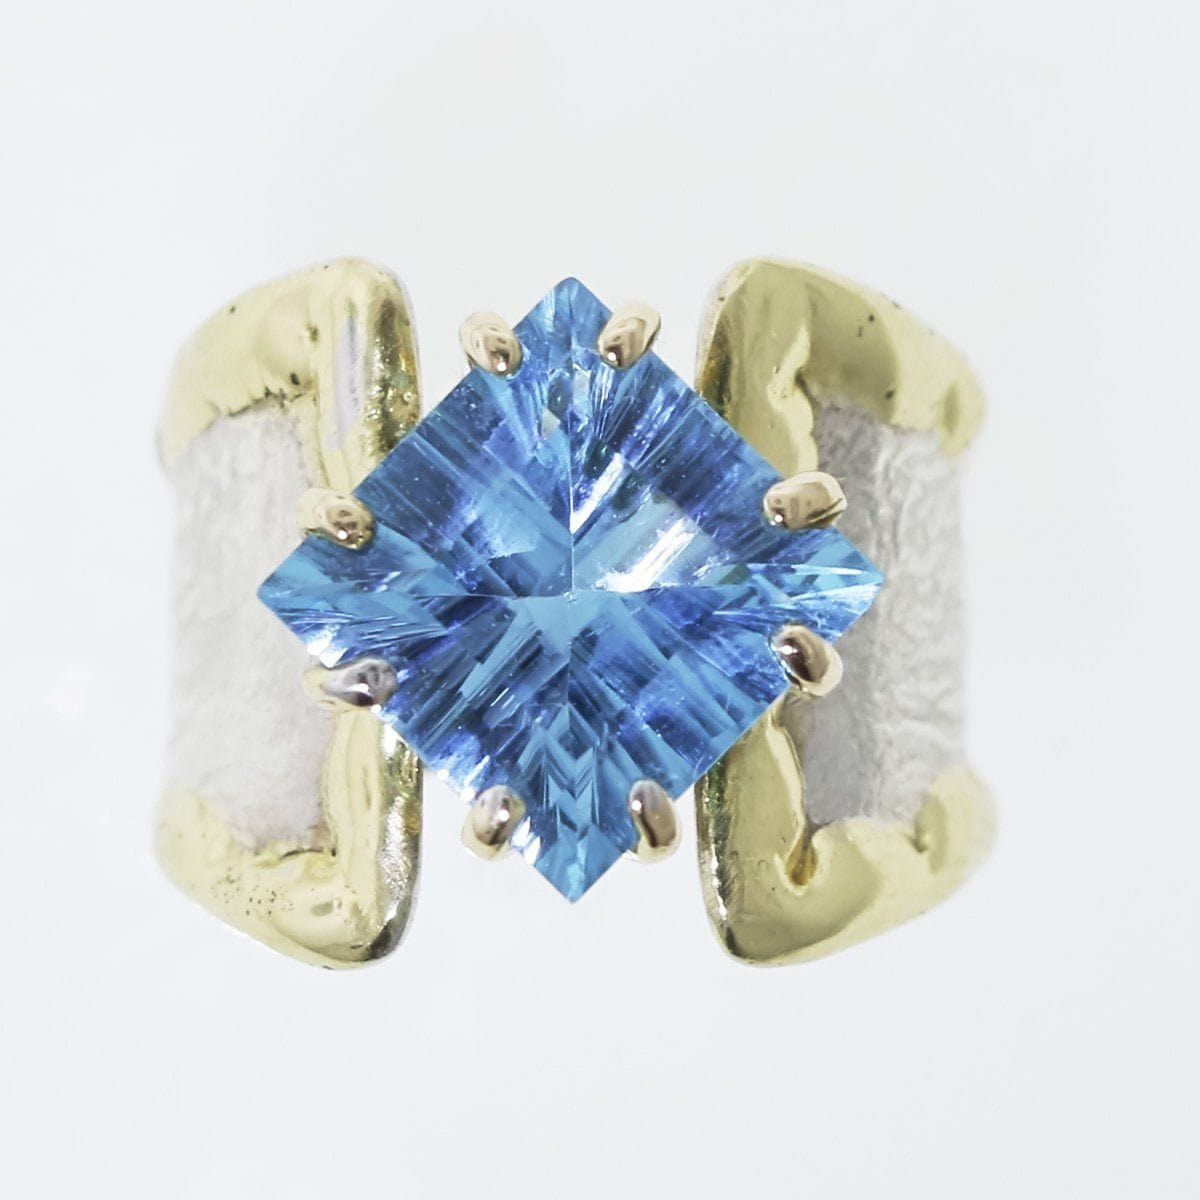 33270 - Topaz Ring-Fusion Designs-Renee Taylor Gallery